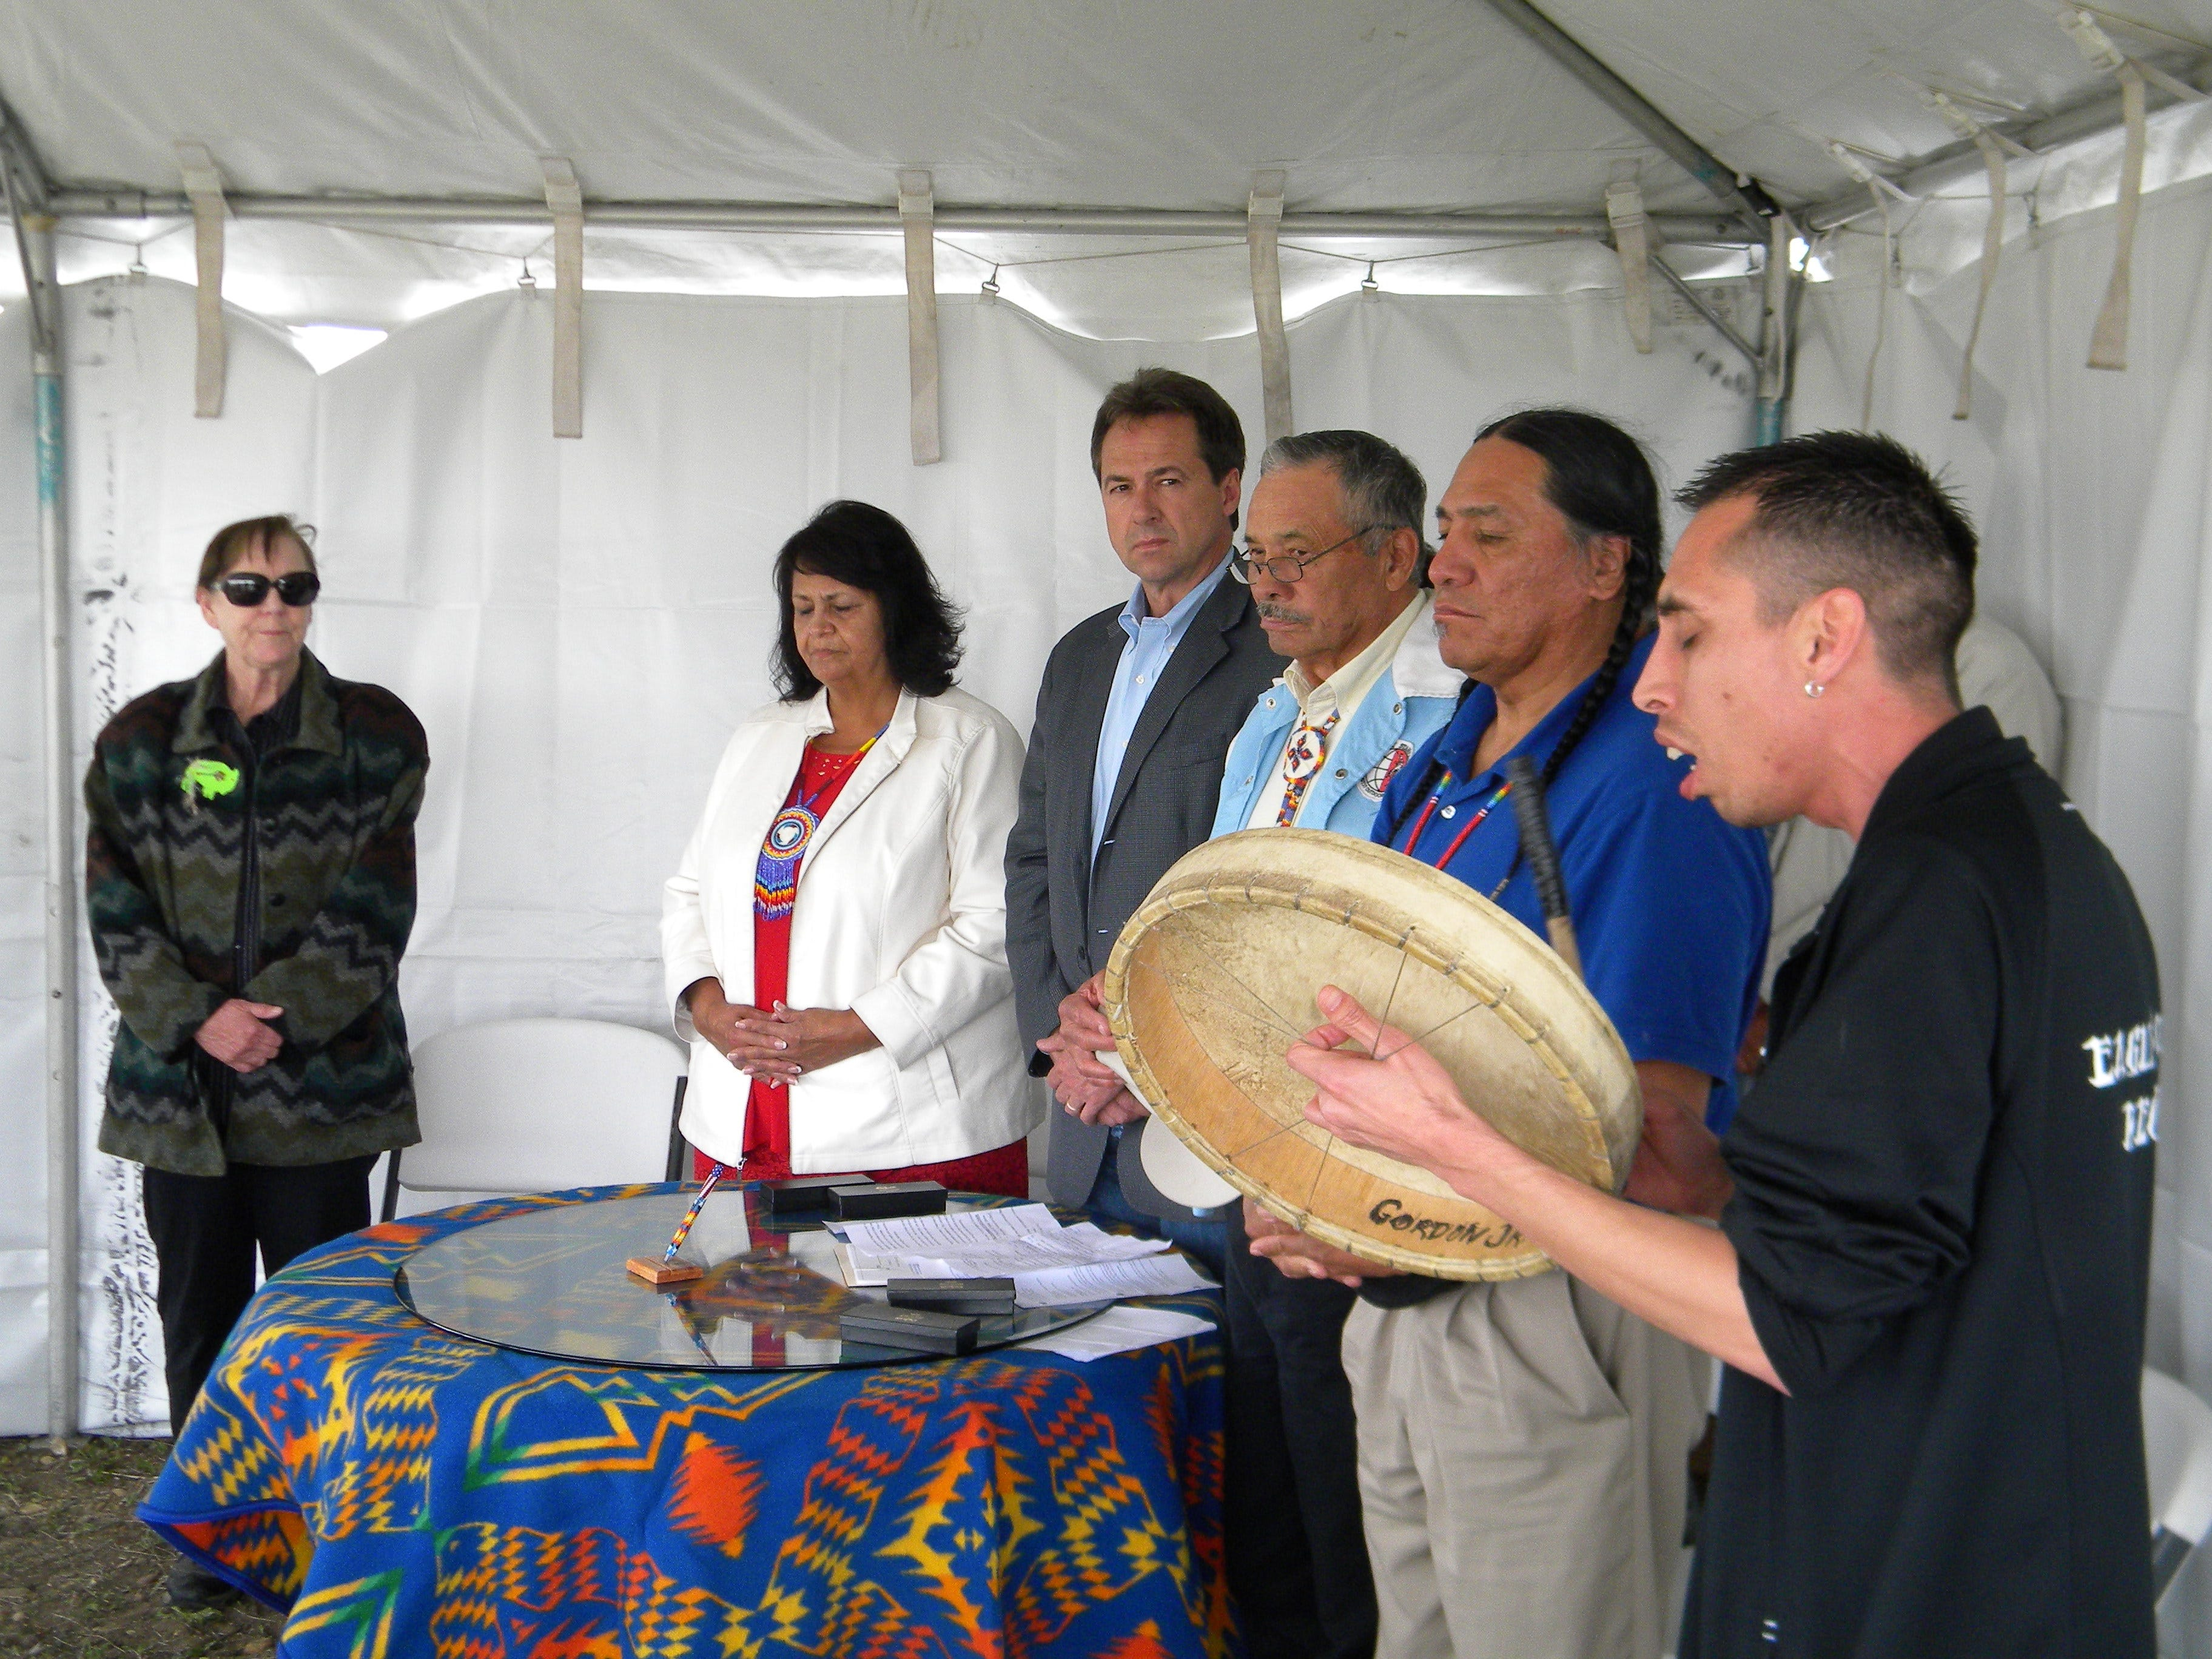 Nakoa Heavy Runner, right, sings  just before Gov. Steve Bullock signed a measure expanding youth suicide prevention efforts. Nakoa Heavy Runner sings an honor song Wednesday at the Fort Peck Tribes' Turtle Mound Buffalo Ranch just before Gov. Steve Bullock signed a measure expanding youth suicide prevention efforts in Montana's tribal communities. From left, Rep. Bridget Smith, D-Wolf Point, Fort Peck Vice Chairwoman Patt Iron Cloud, Gov. Steve Bullock. Tribal Chairman A.T. Stafne and Sen. Jonathan Windy Boy, D-Box Elder.